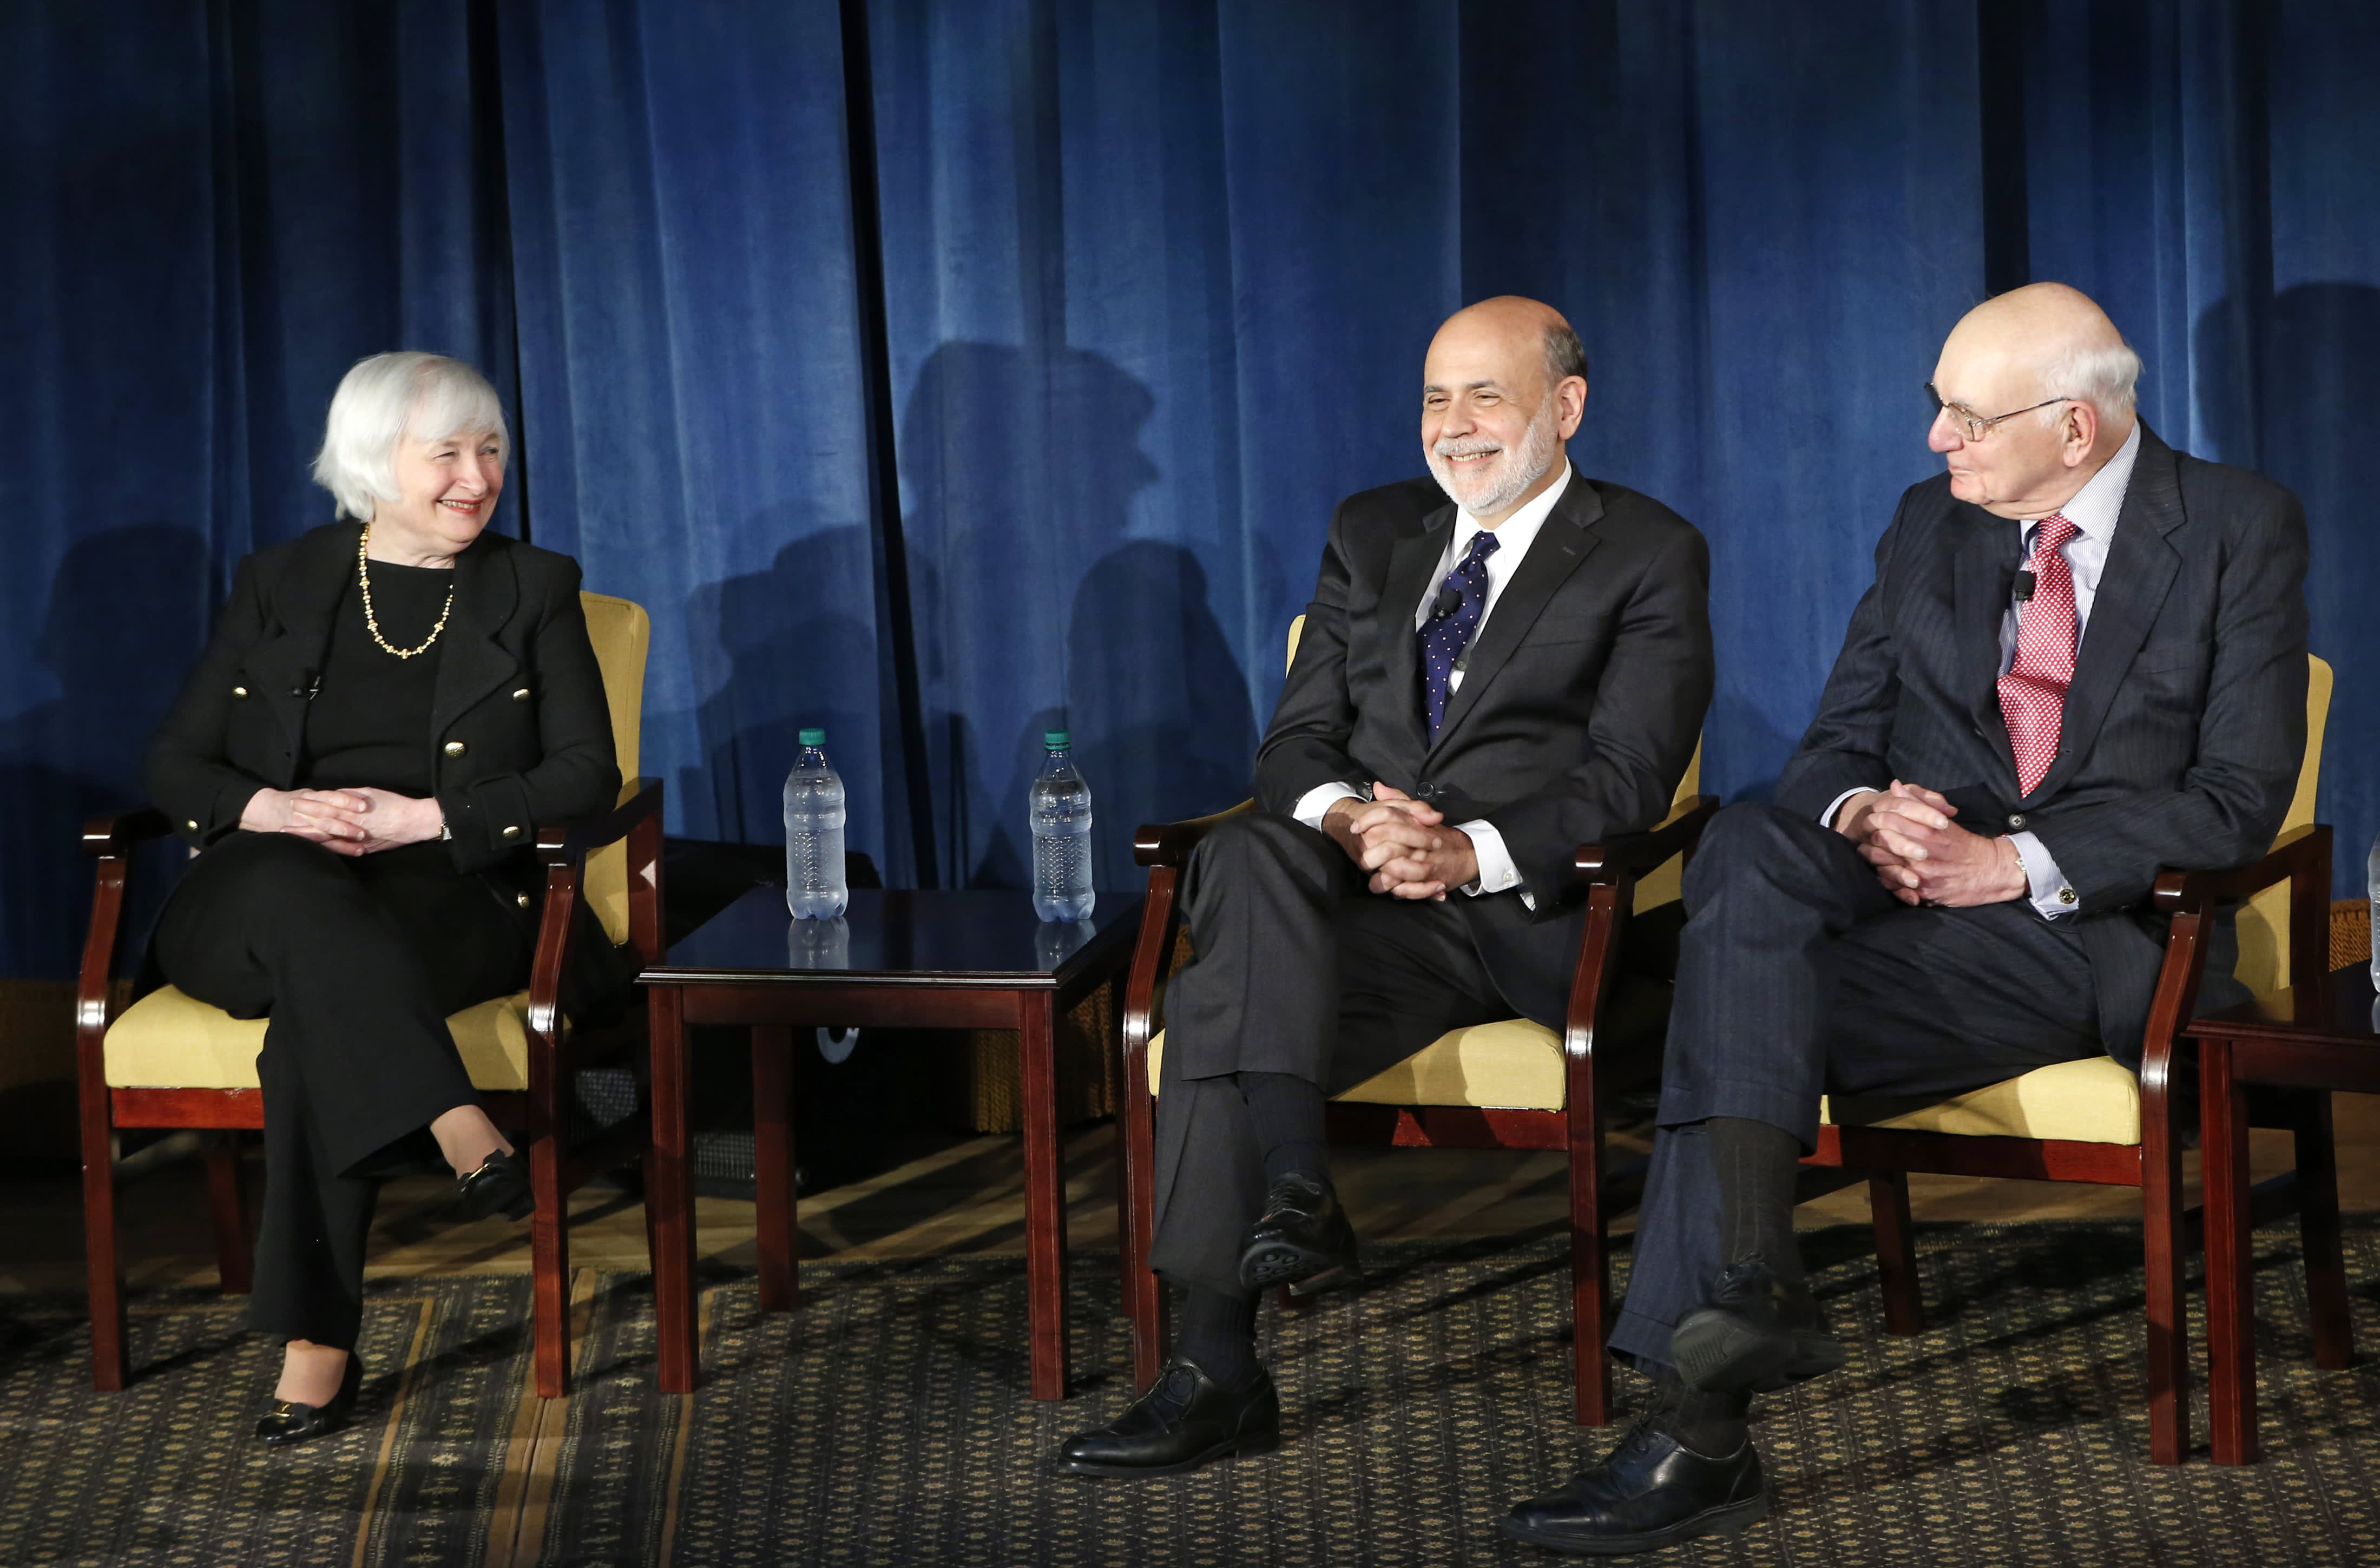 Former Fed chairs Volcker, Greenspan, Bernanke and Yellen call for independent central bank